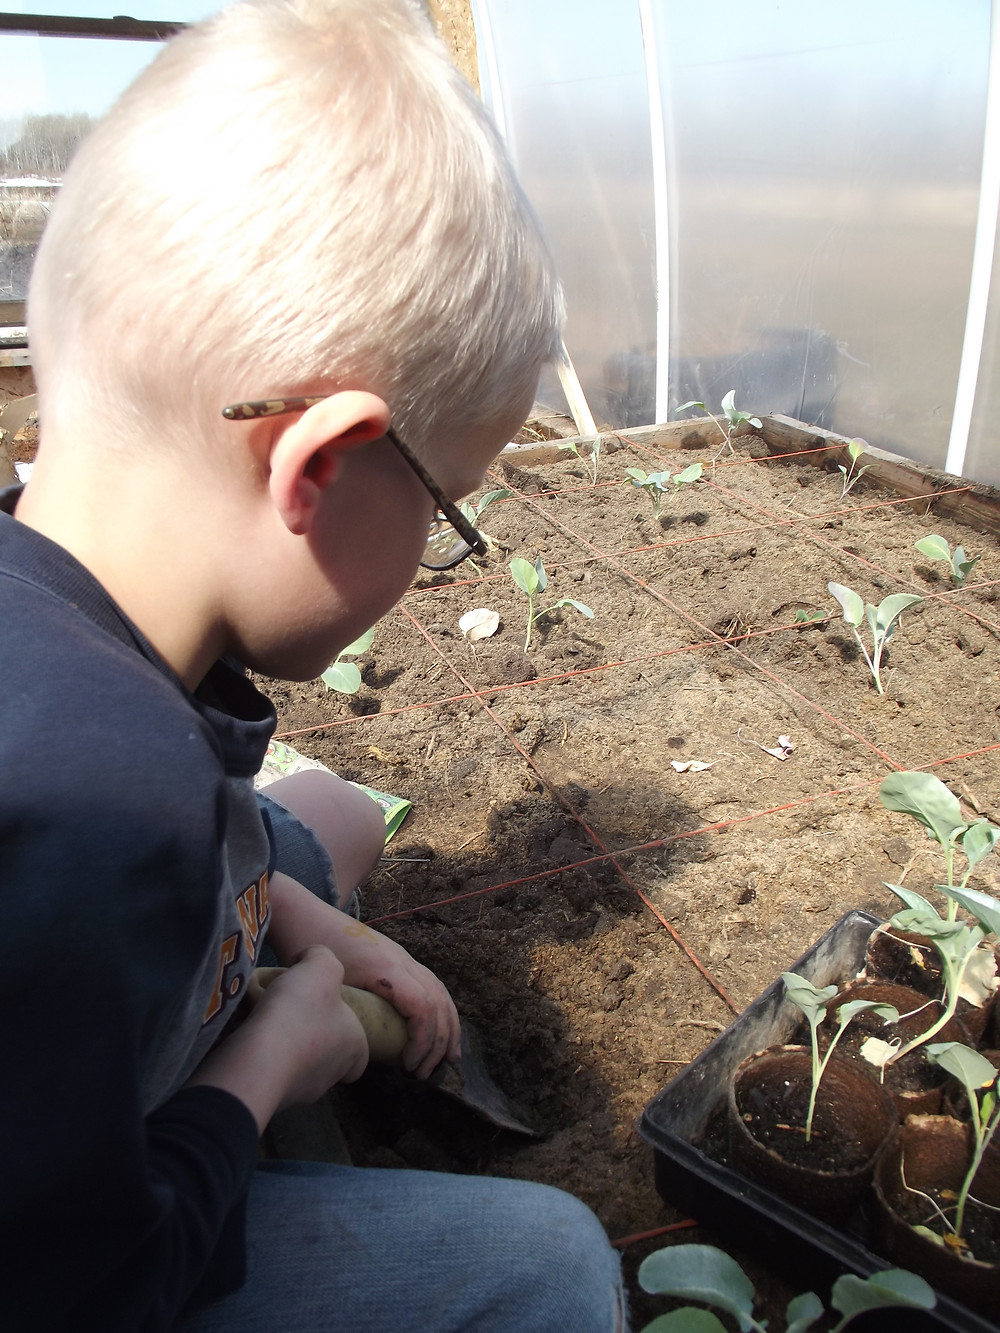 Young boy planting broccoli seedlings in hoop house, garden